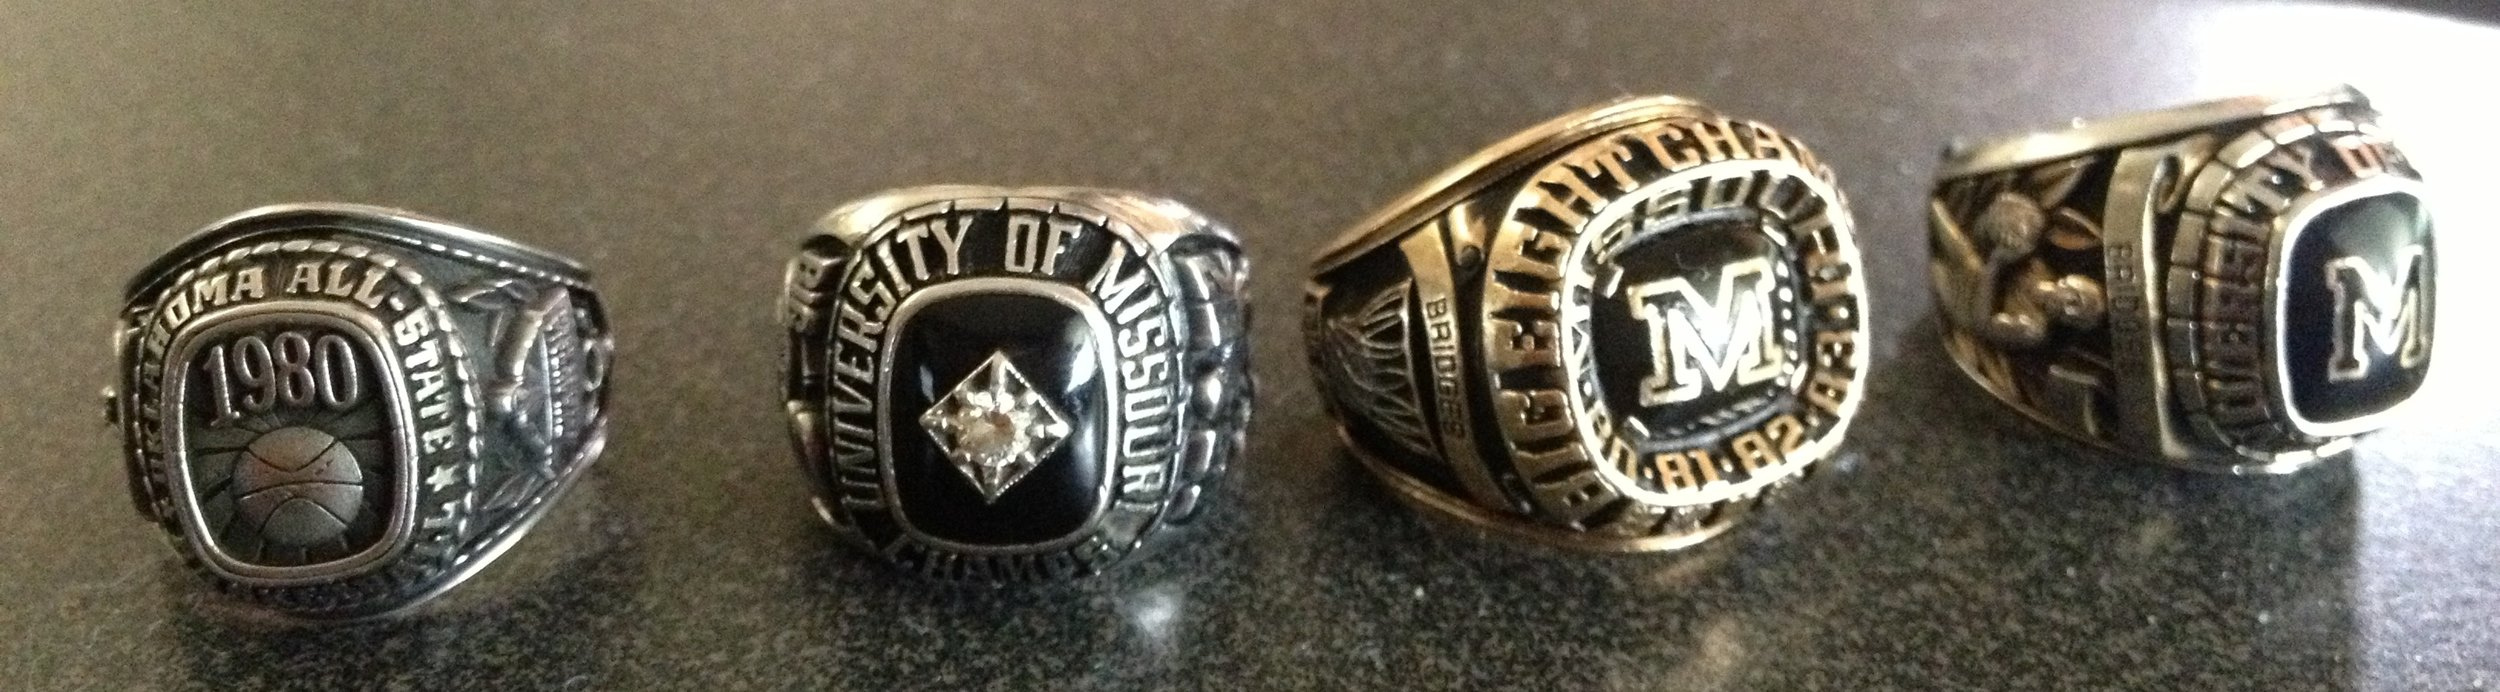 Prince Bridges All State, Big 8 Championship 1 & 2 and Senior Rings.Training is the answer.